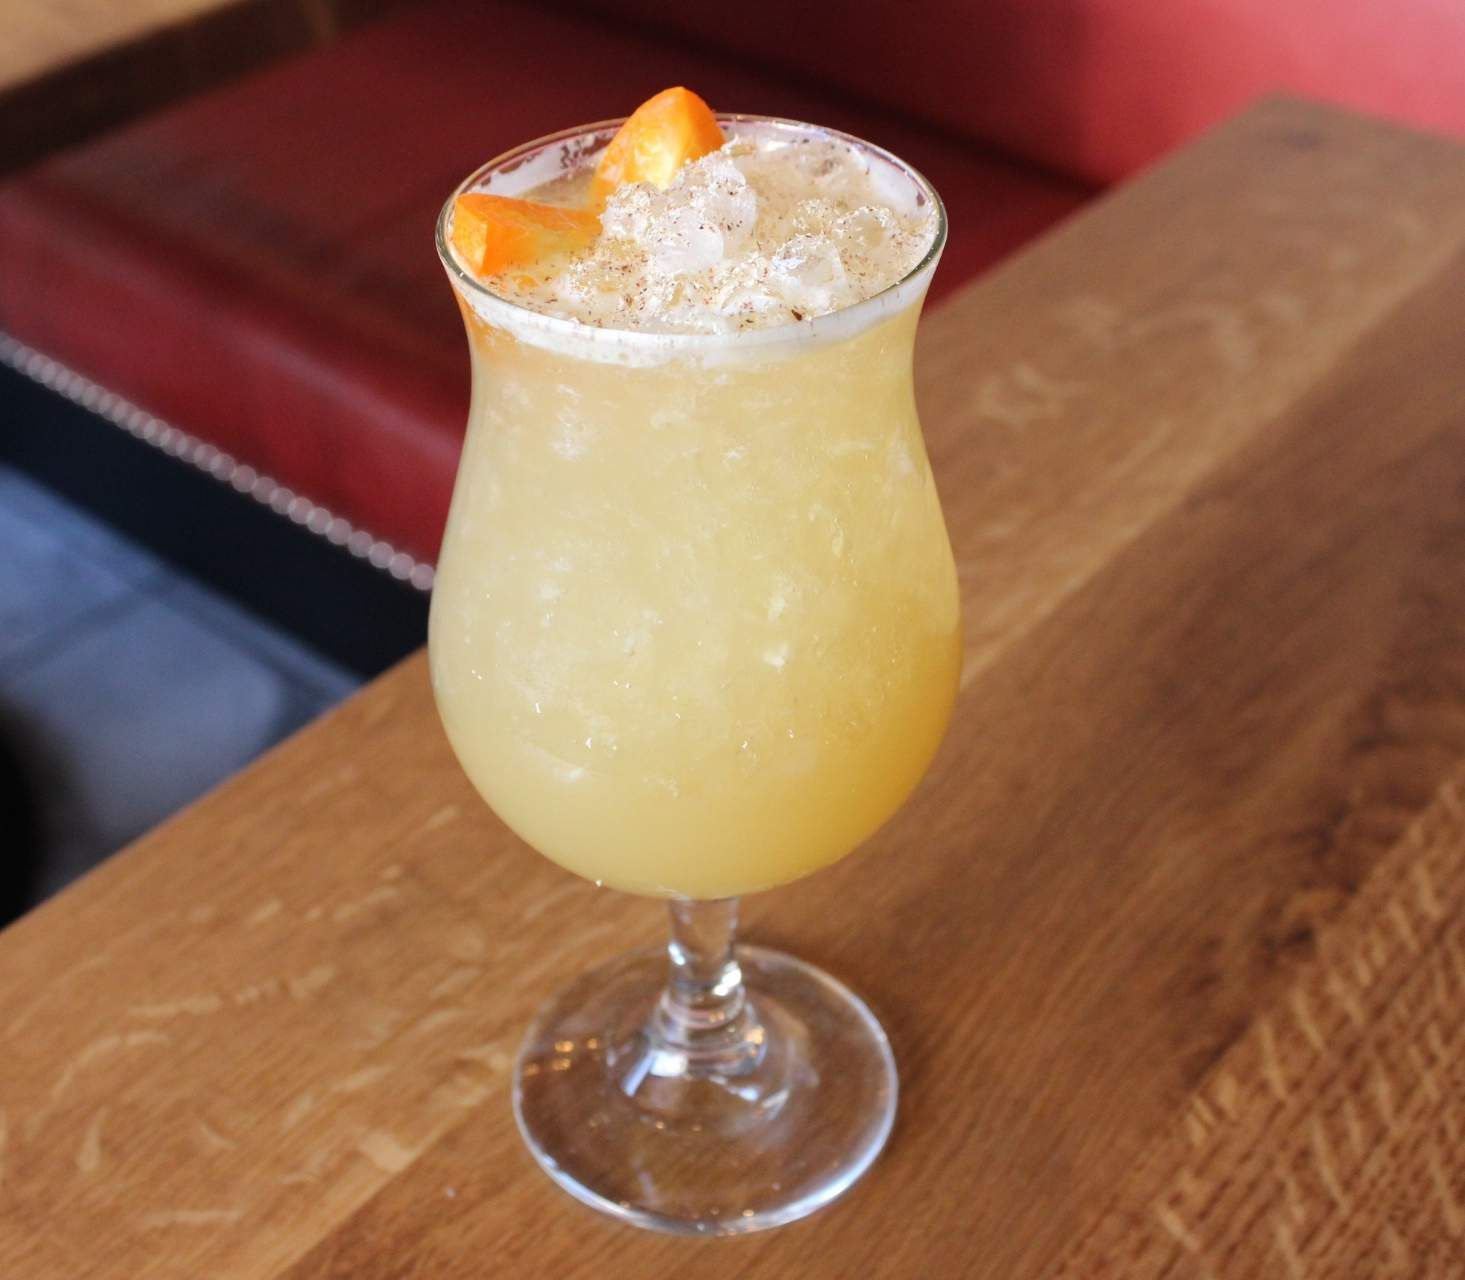 Beer cocktails are perfect for brunch. This one includes aged rum, ginger, kumquat, saison, and allspice.